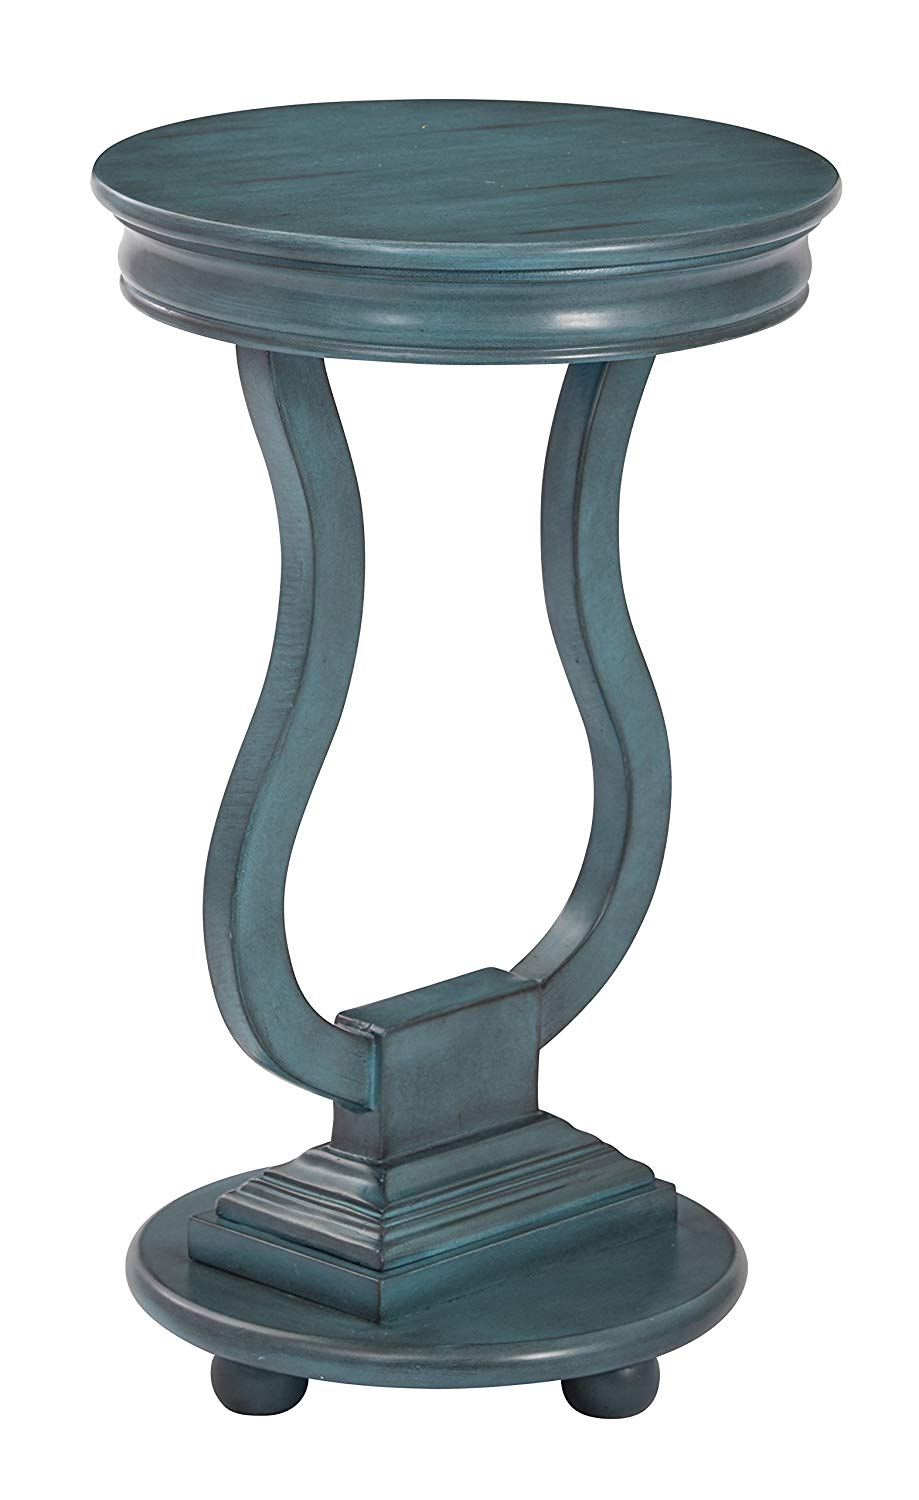 osp designs chase round accent table mila square antique finish caribbean blue kitchen dining mosaic tops outdoor pottery barn christmas wood and silver coffee cement living end